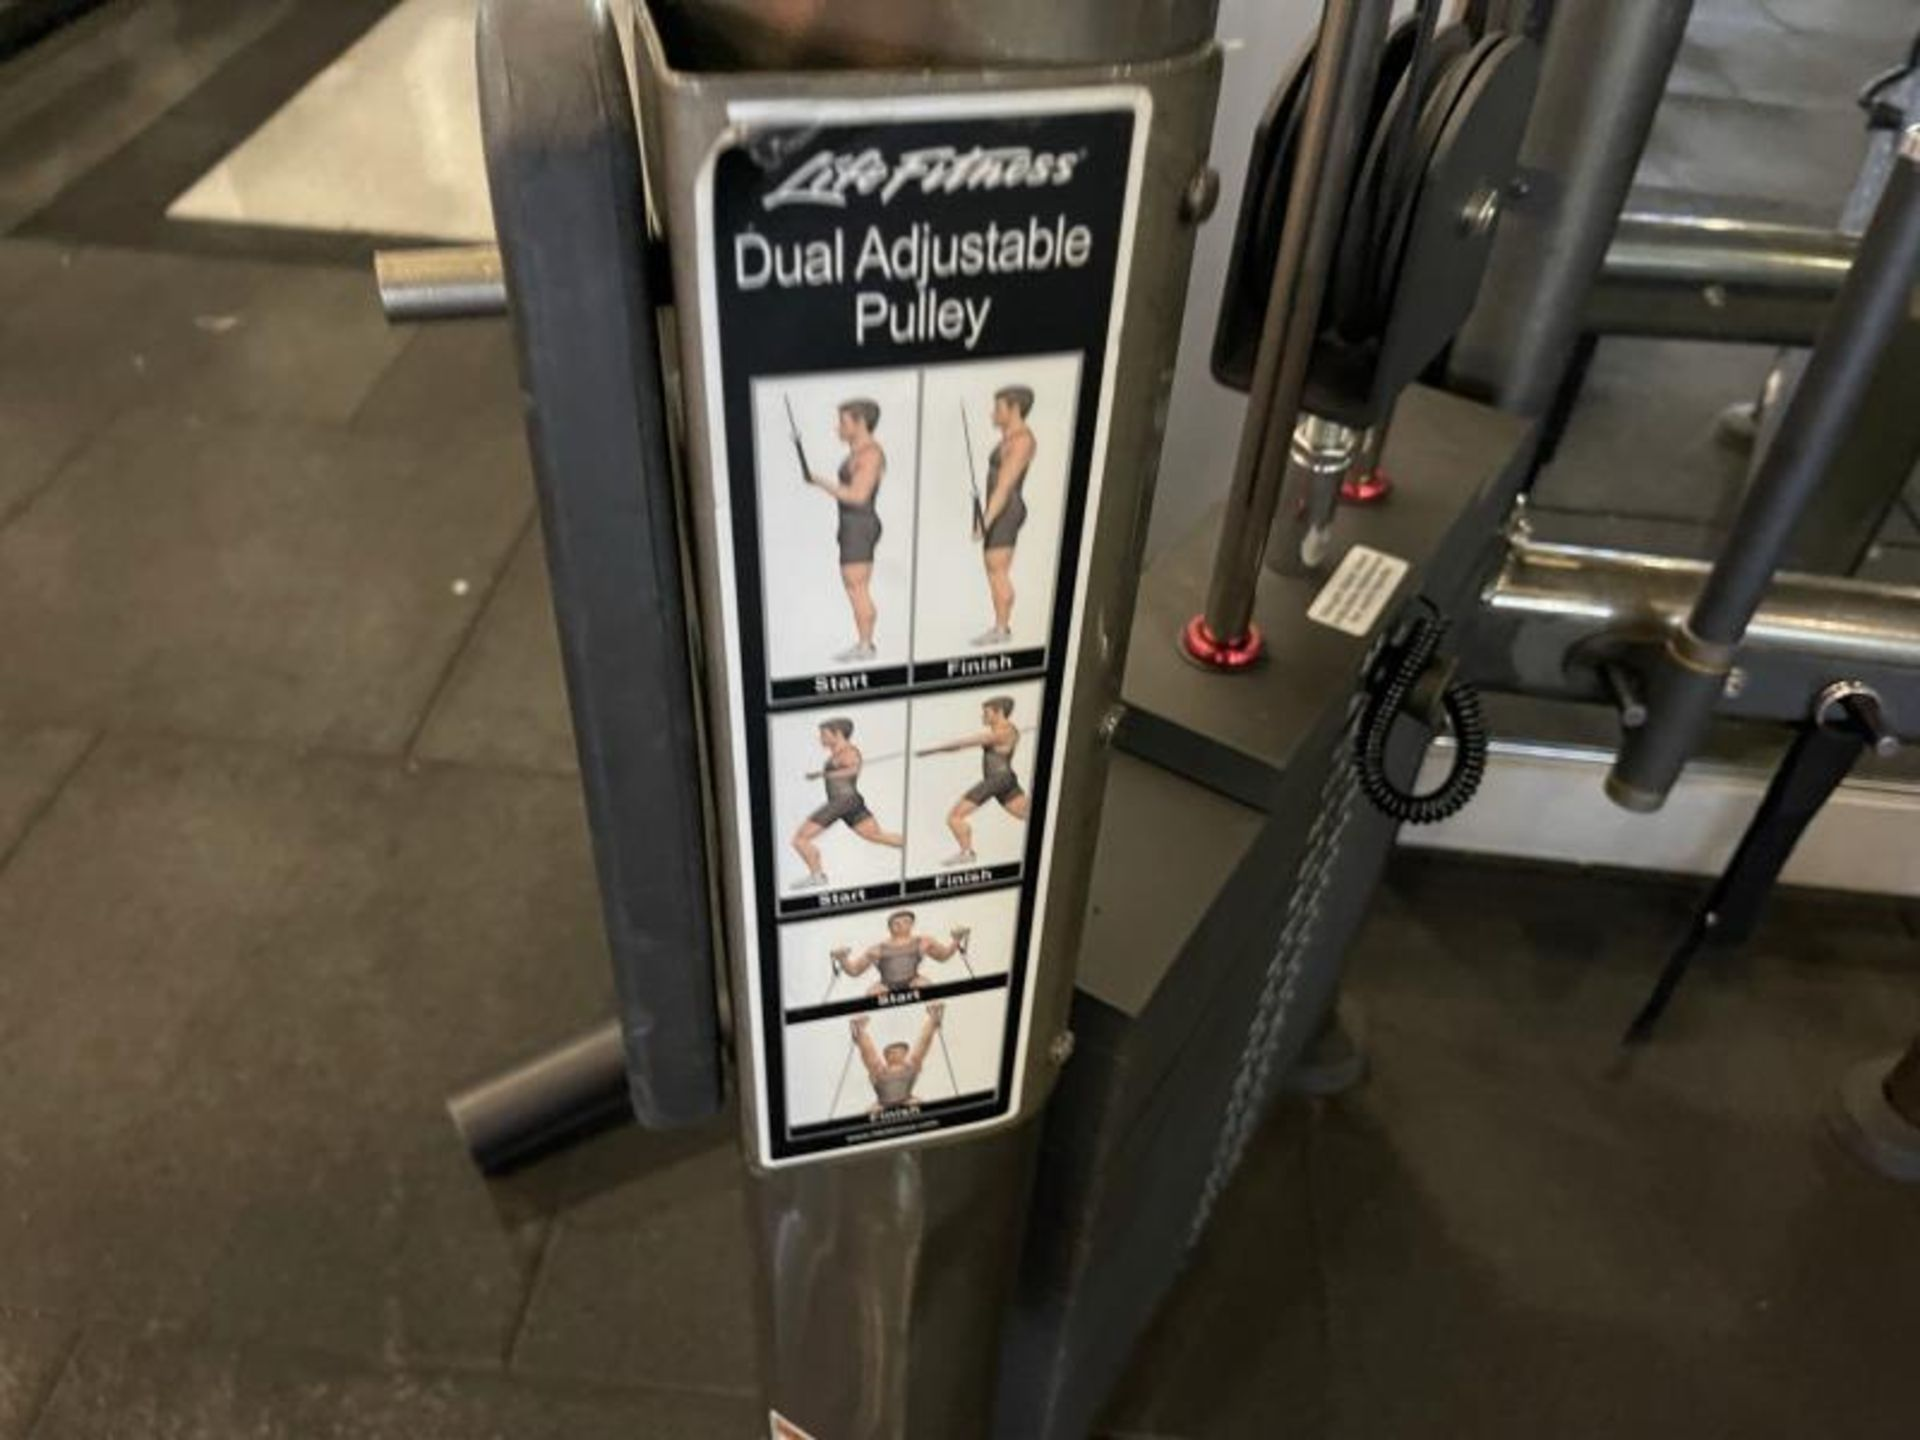 Life Fitness Dual Adjustable Pulley M: CMDAP - Image 3 of 6